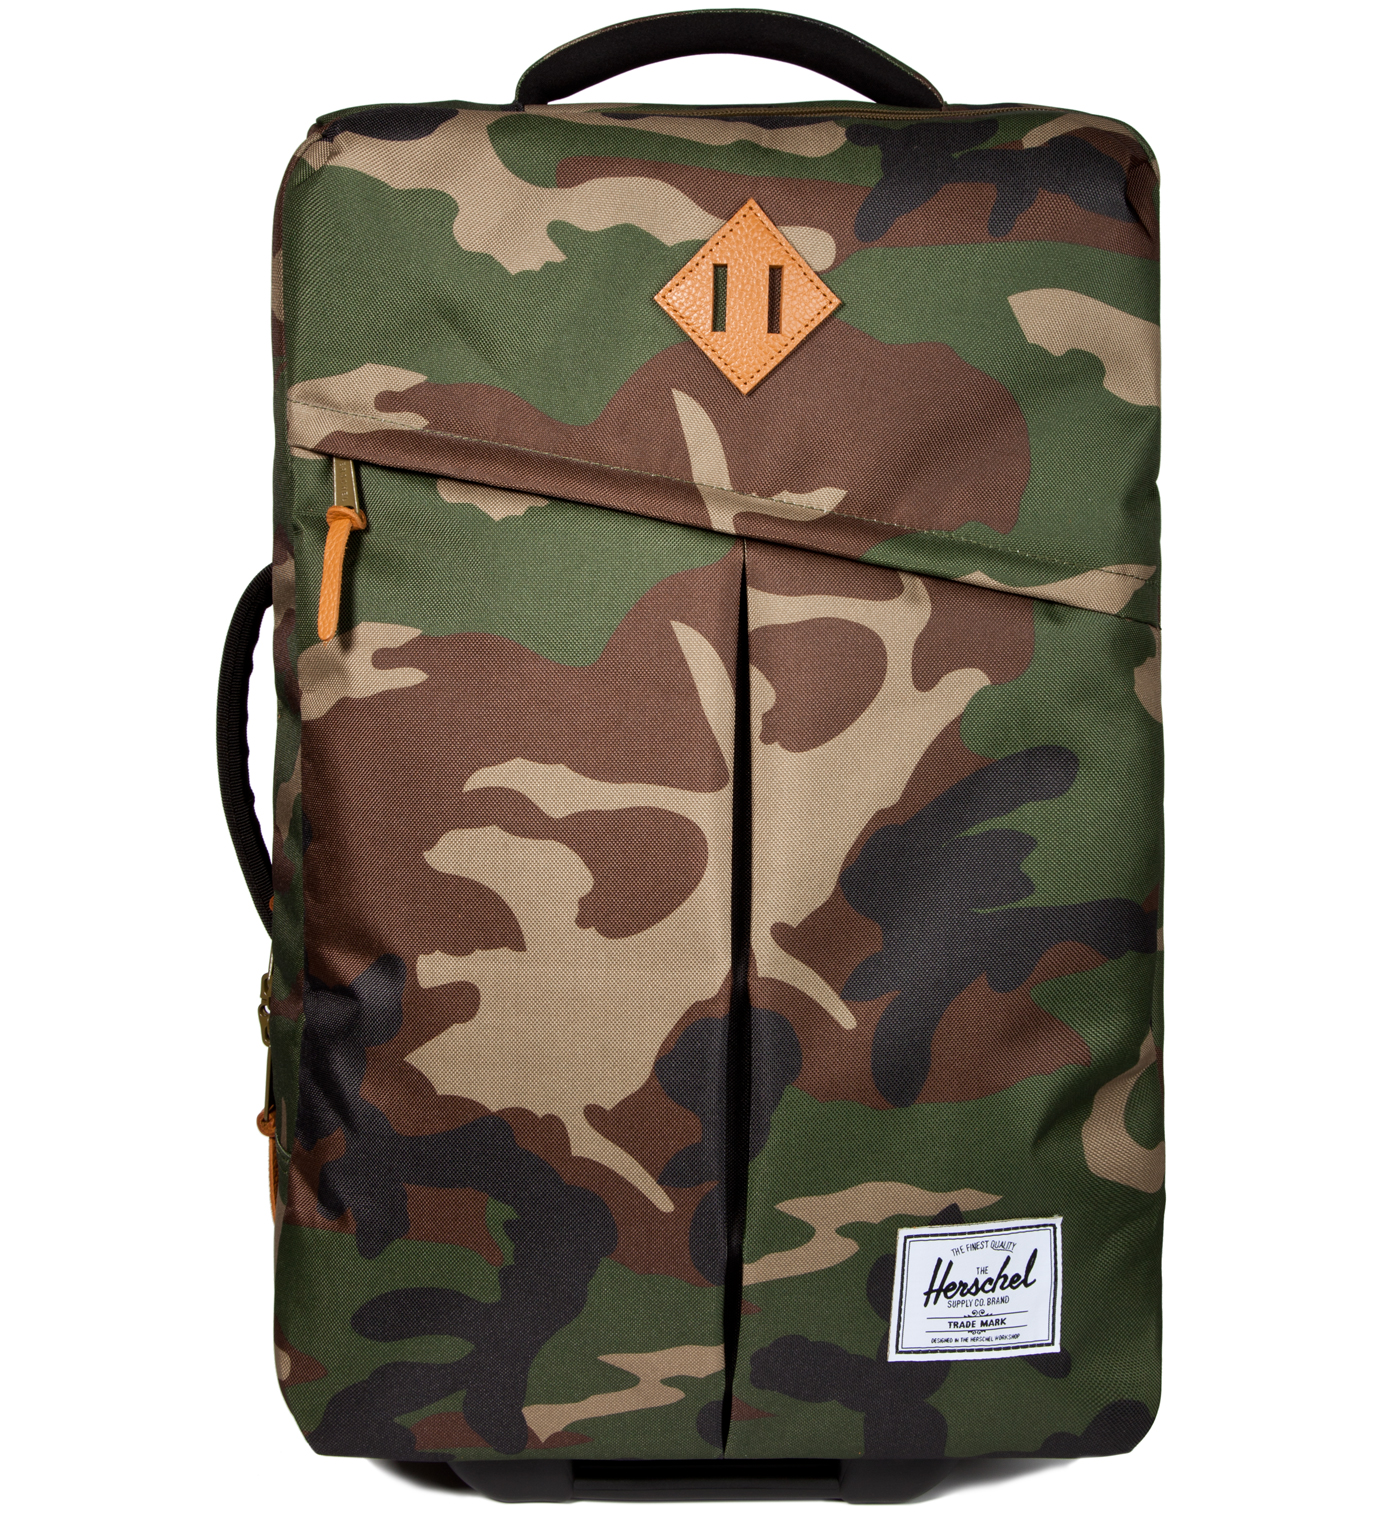 Herschel Supply Co. Woodland Camo Campaign Luggage